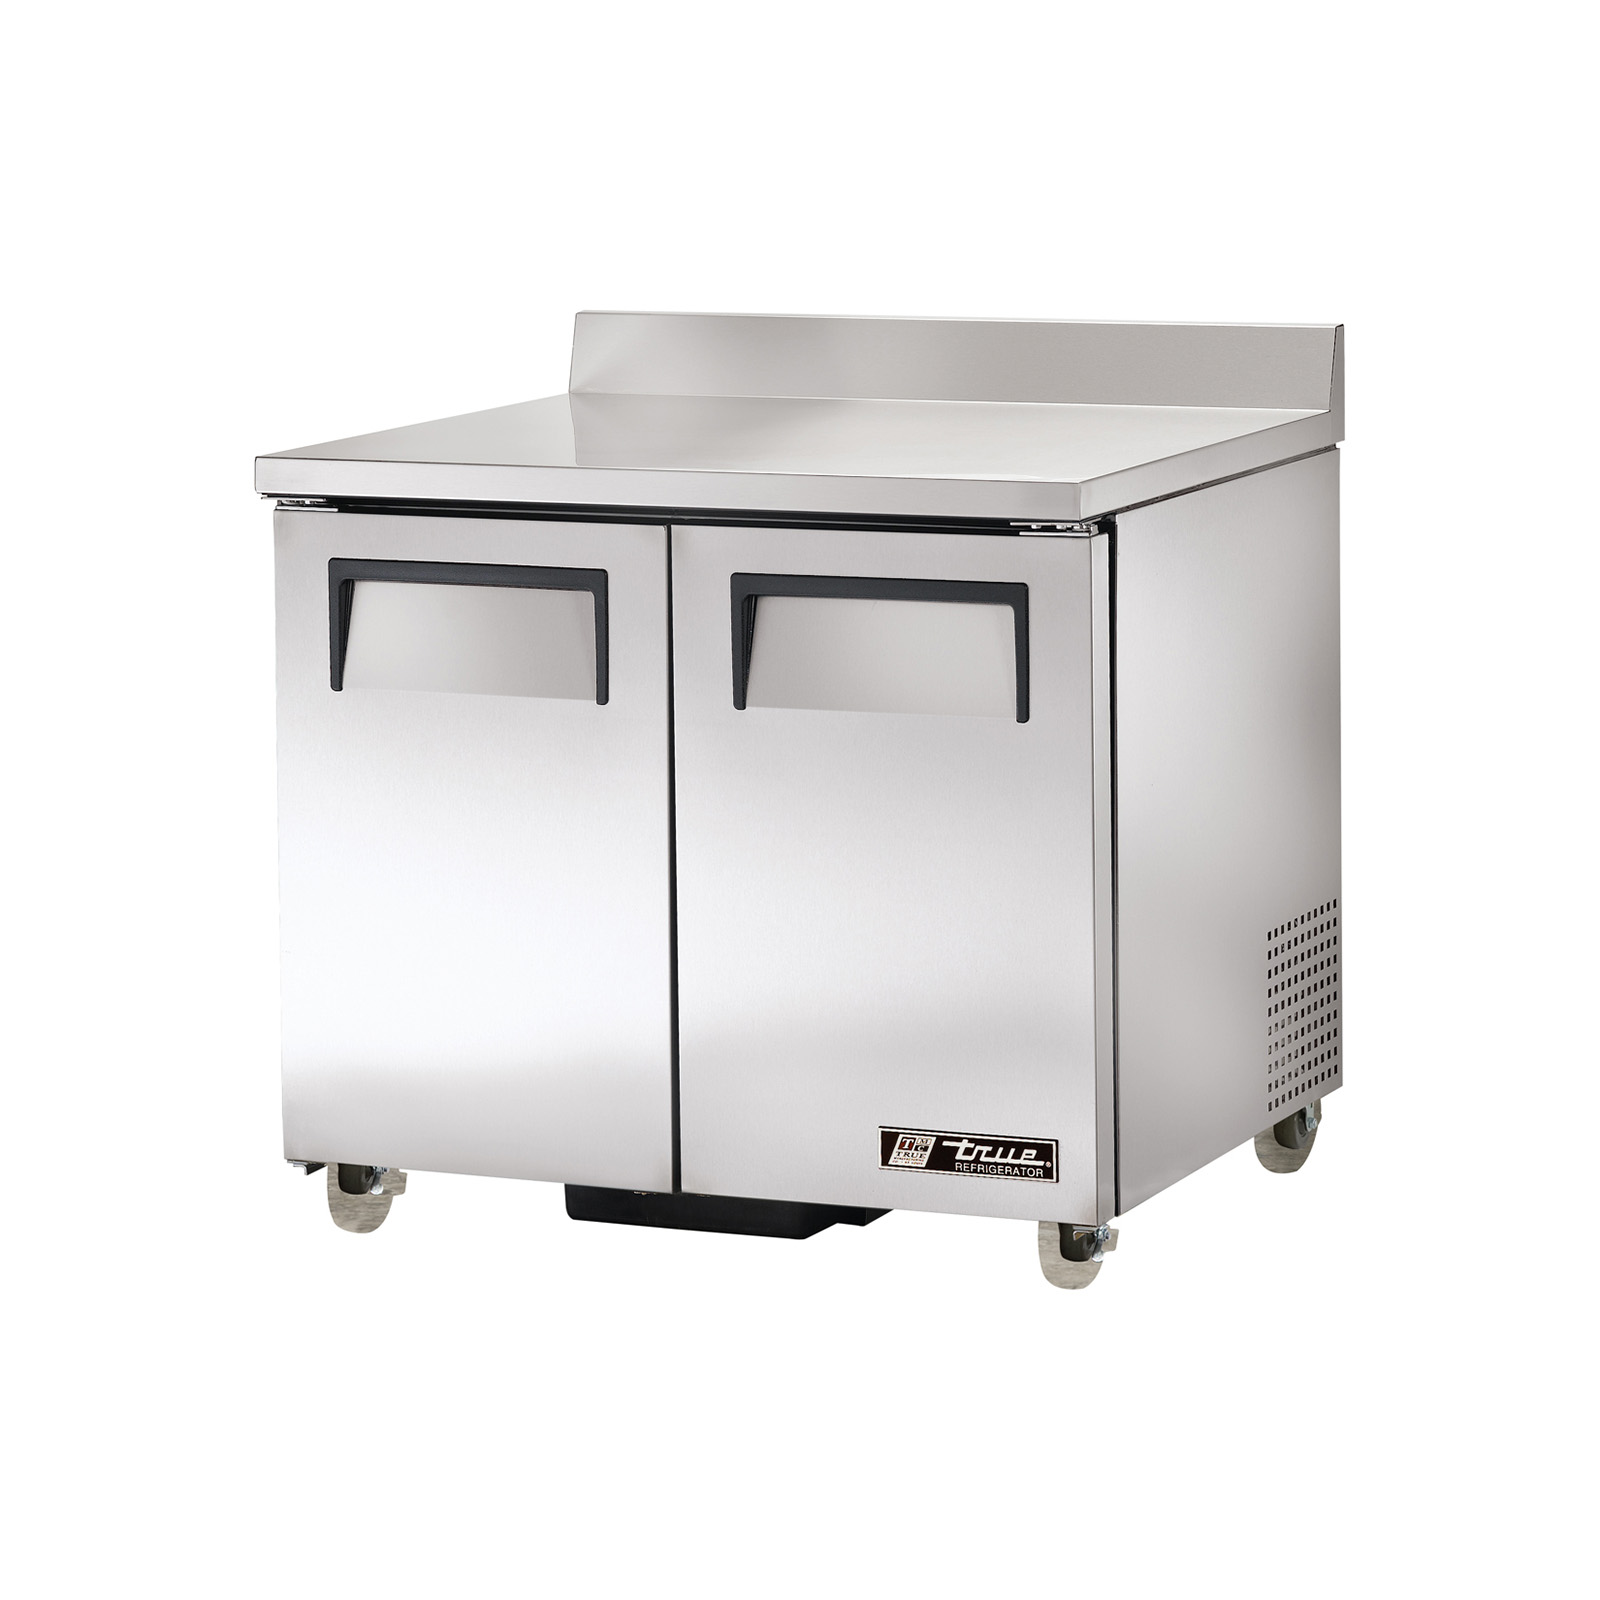 TWT-36-ADA True - ADA Compliant Work Top Refrigerator two-section